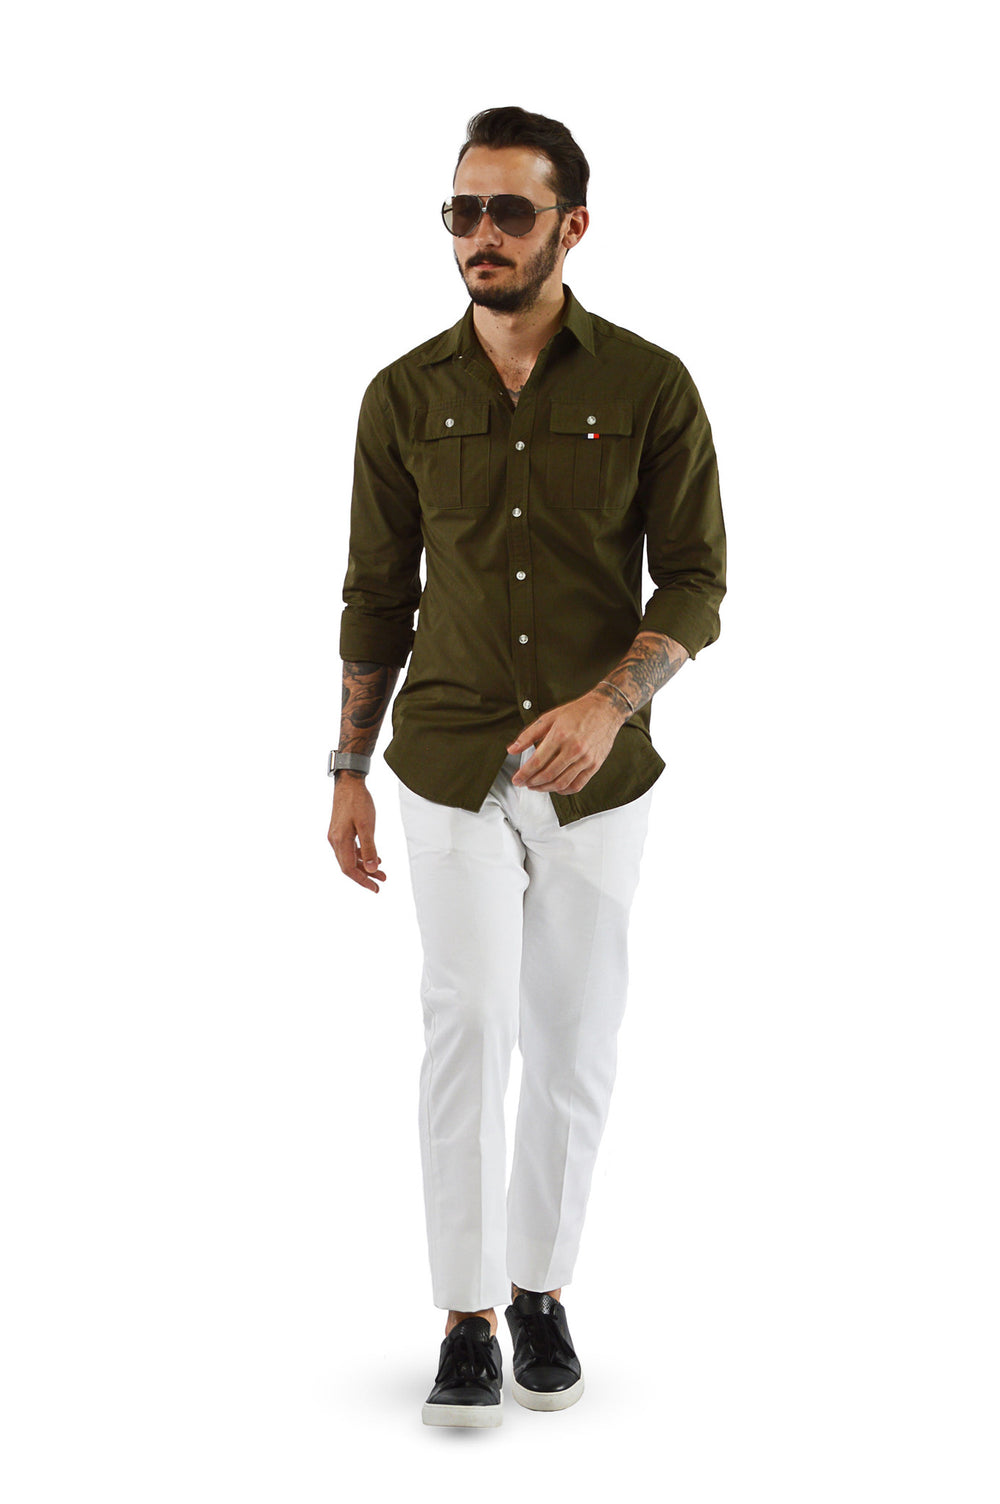 walking wearing military shirt with white chinos